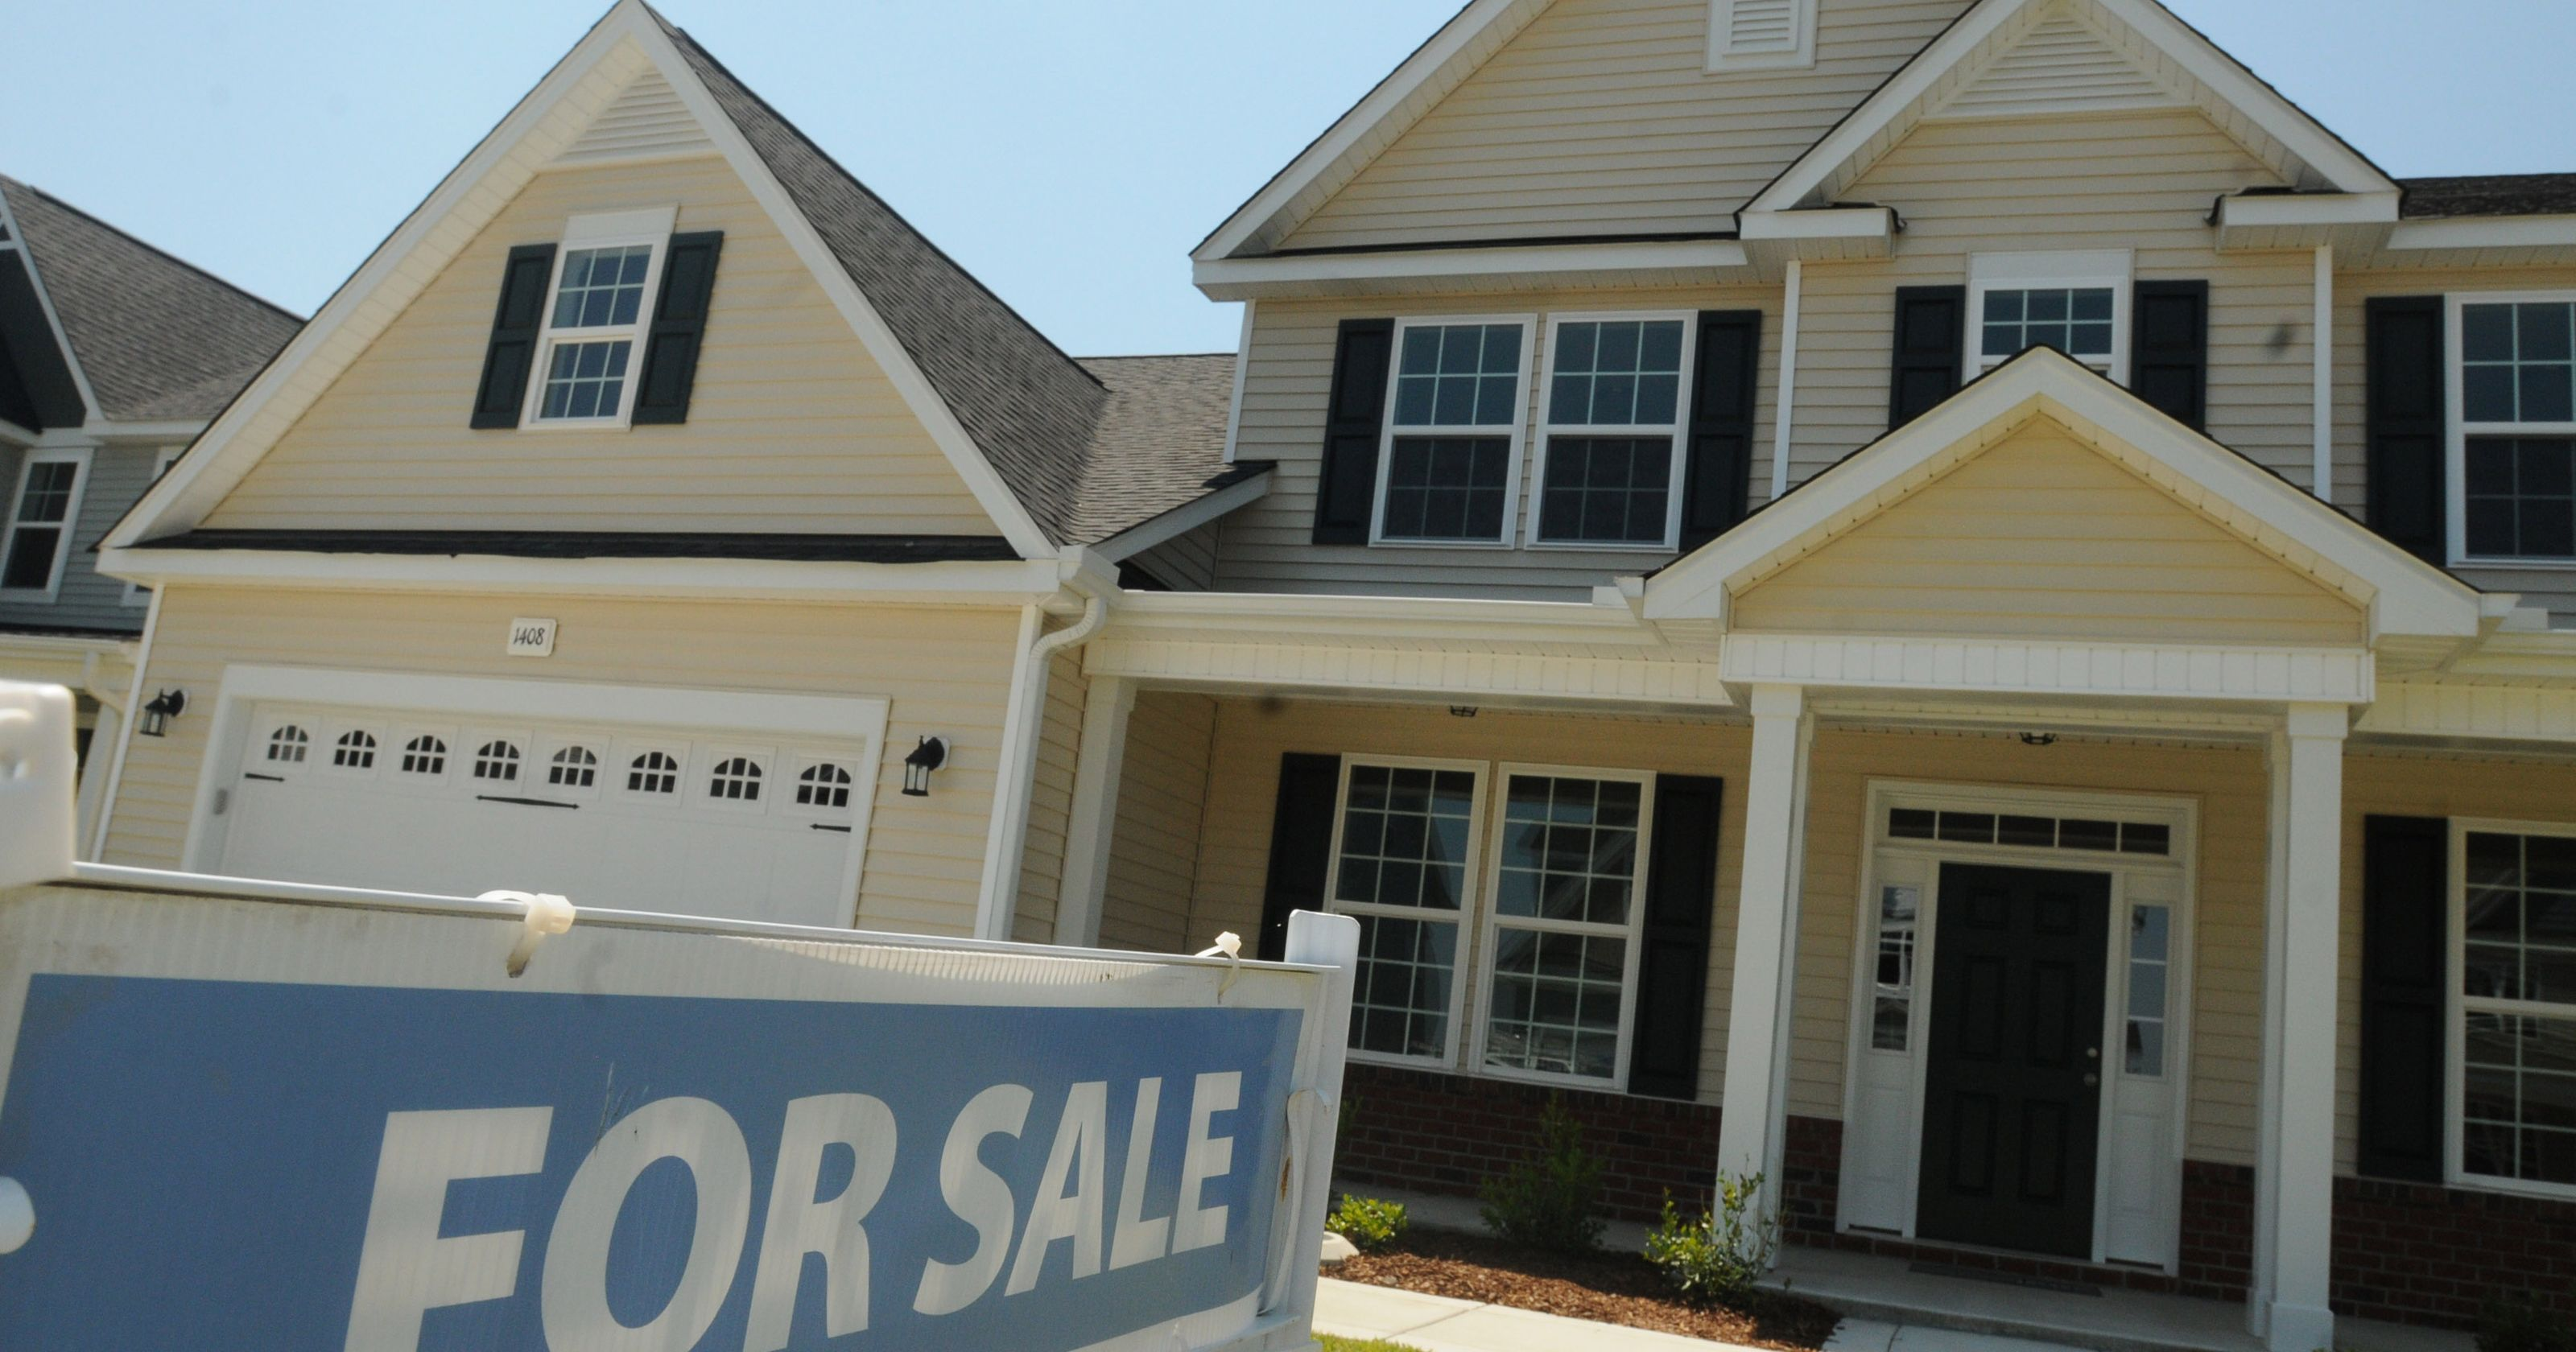 House hunters 6 homebuying tips for the current market